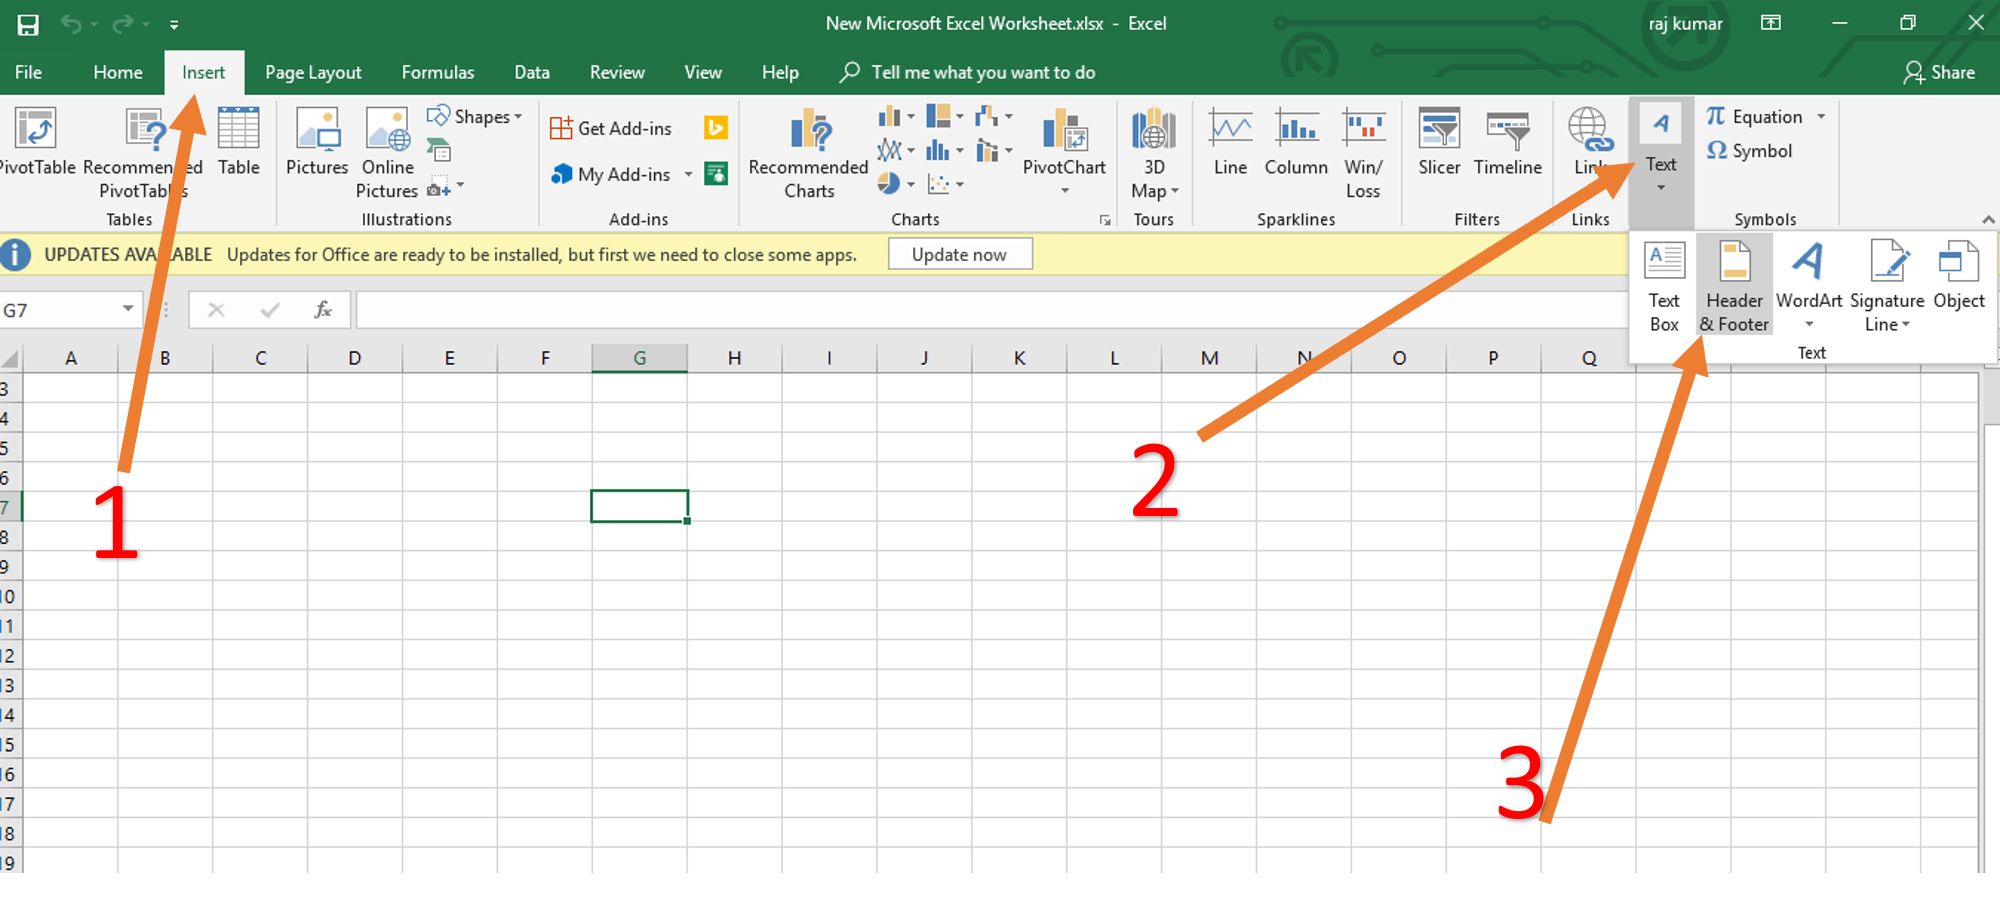 How to insert watermark in Excel 2016, 360, 2017, 2013